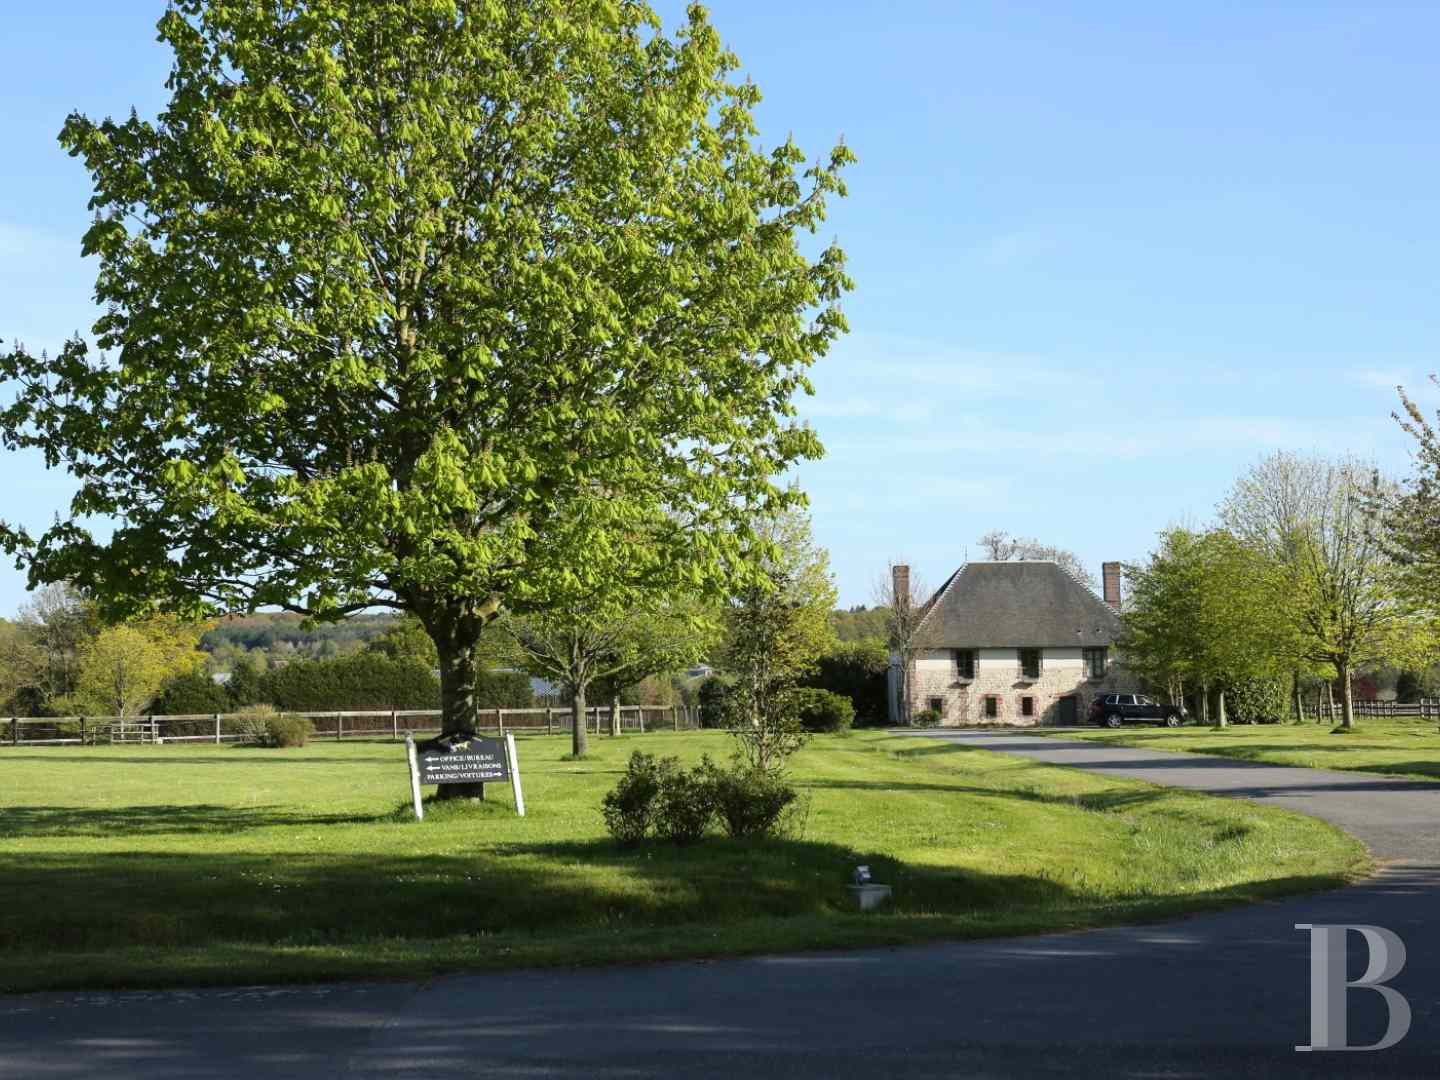 France mansions for sale lower normandy manors equestrian - 10 zoom